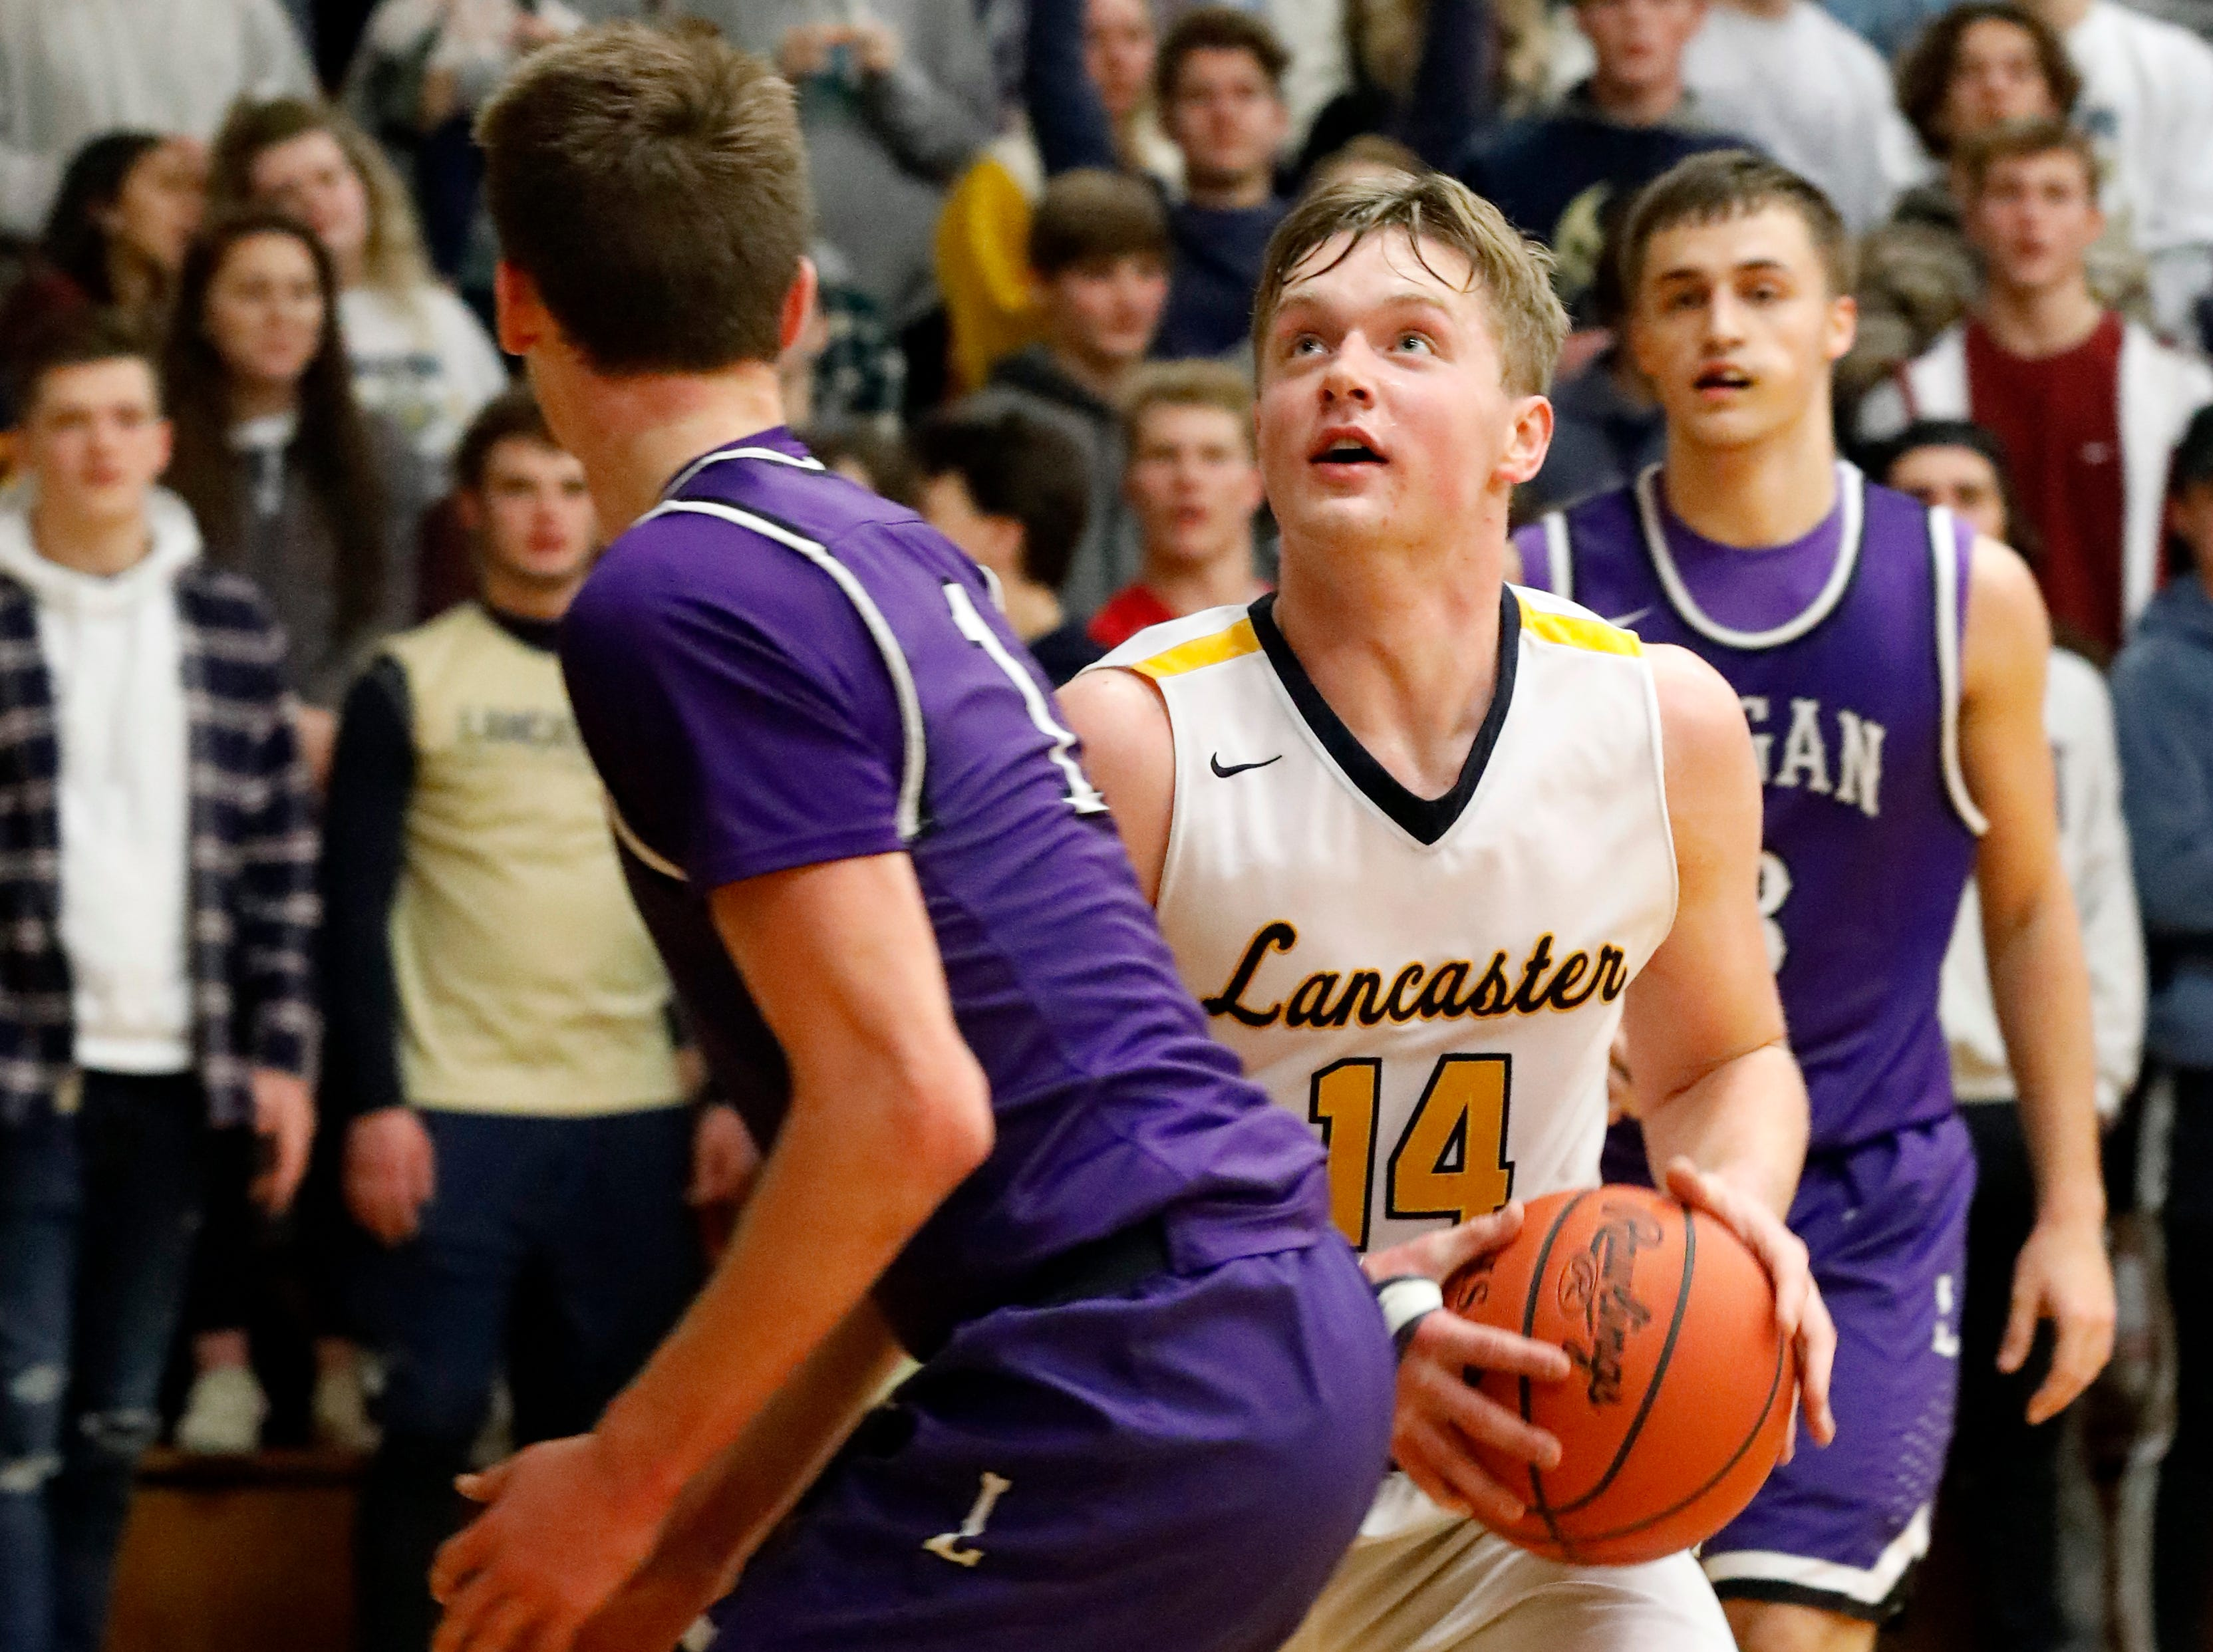 Lancaster lost to Logan 65-37 Tuesday night, Dec. 11, 2018, at Lancaster High School in Lancaster.